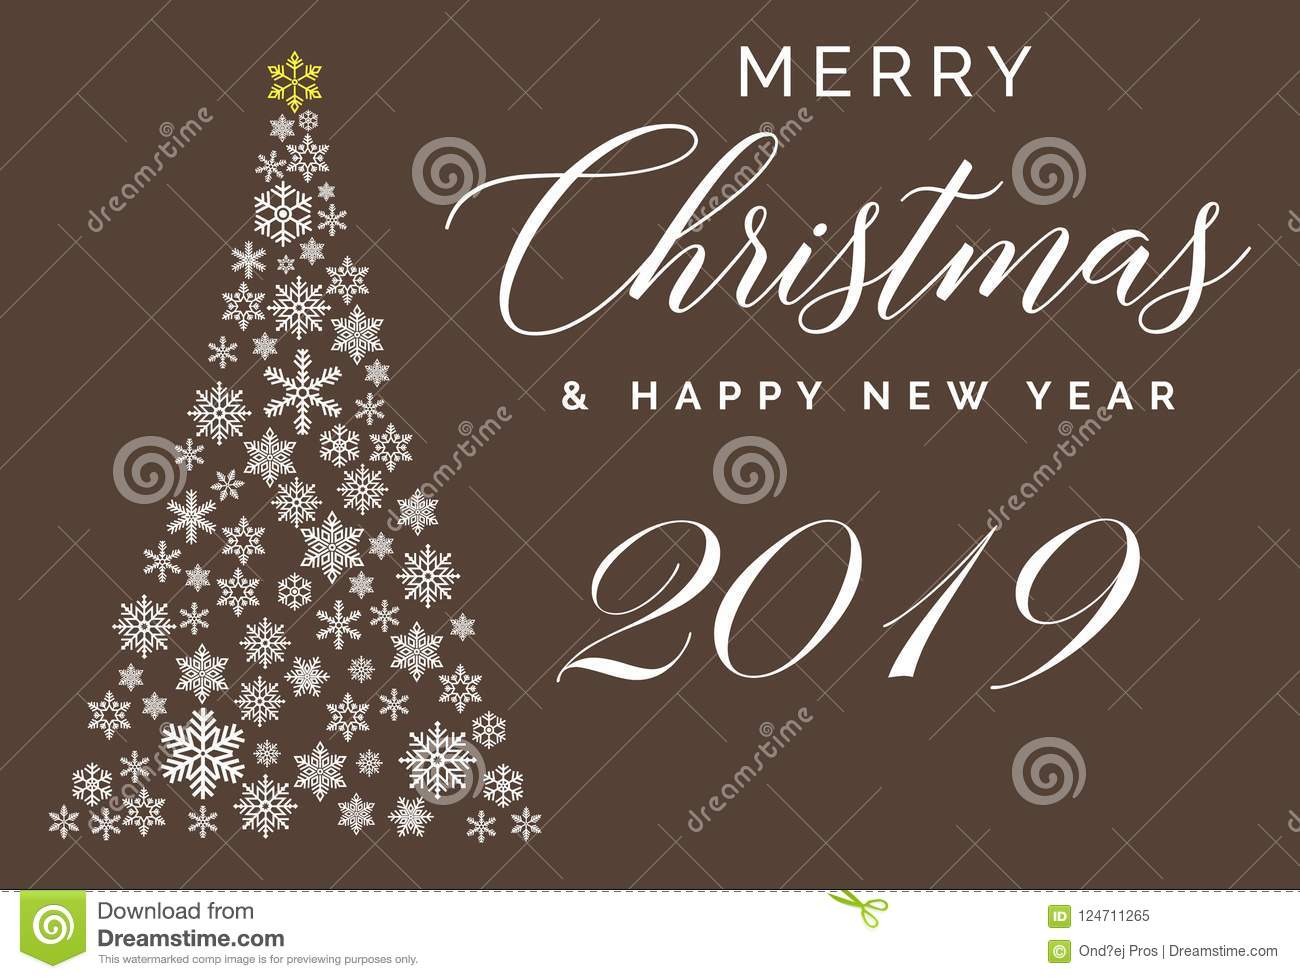 Christmas Images 2019 Download.Merry Christmas And Happy New Year 2019 Lettering Template